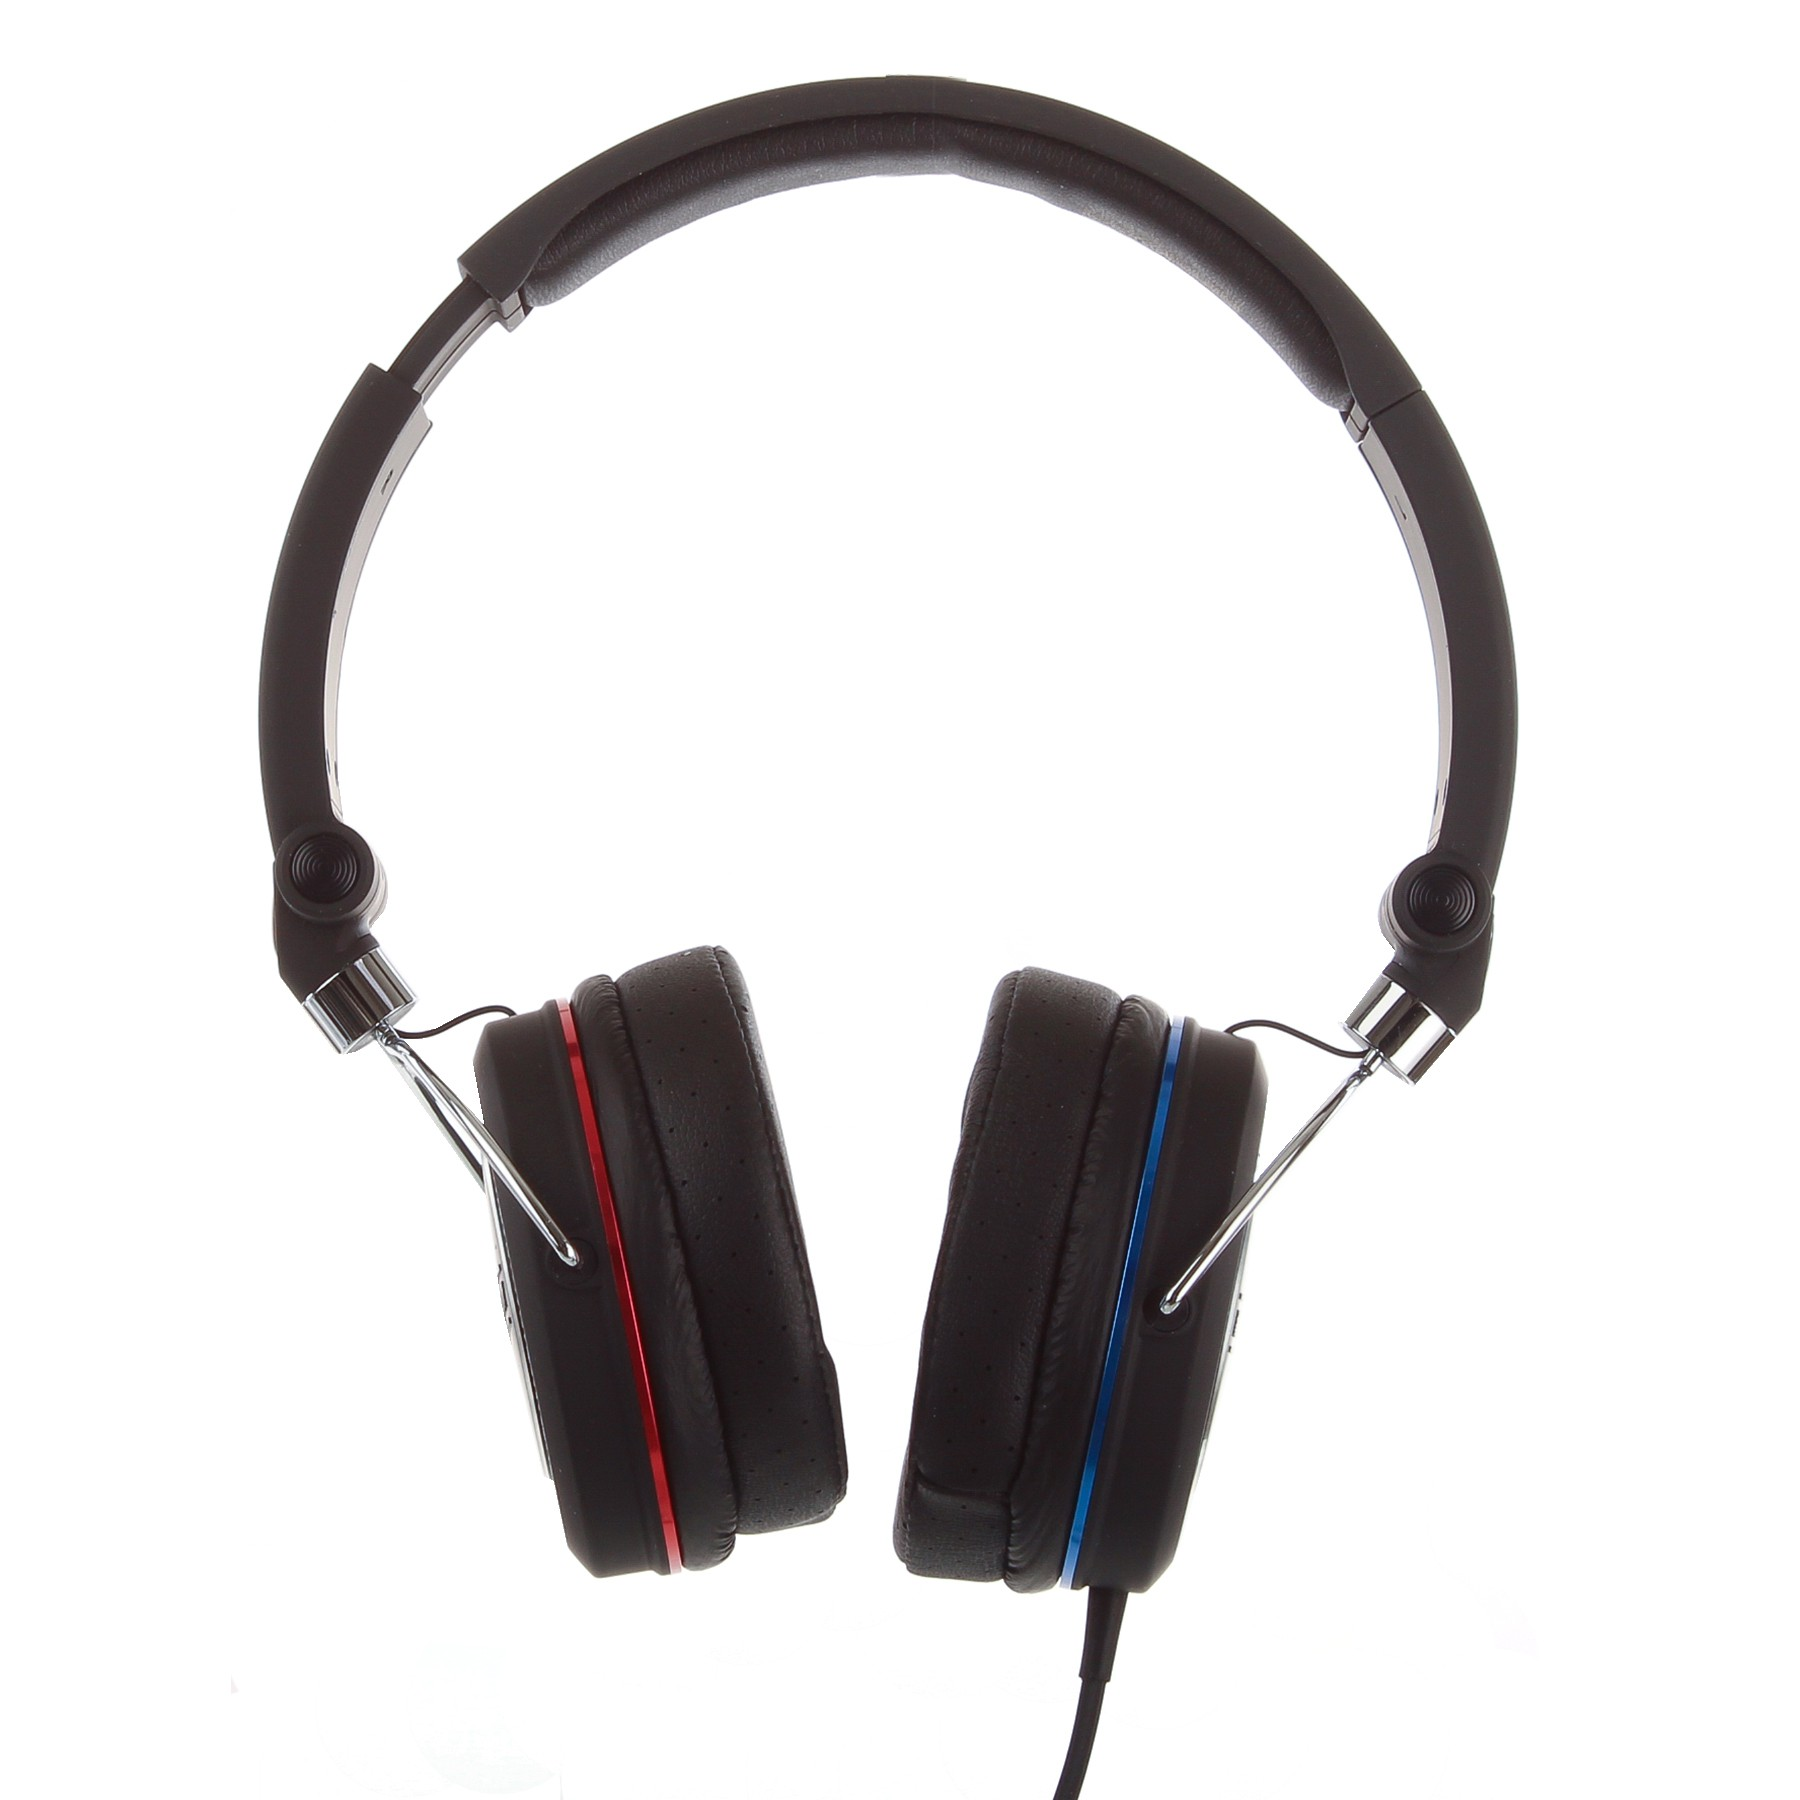 MF-100 High End On-Ear-Kopfhörer  Bild https://cdn03.plentymarkets.com/zsy4vjx32p87/item/images/4890/full/5060183461284-ama-04.JPG